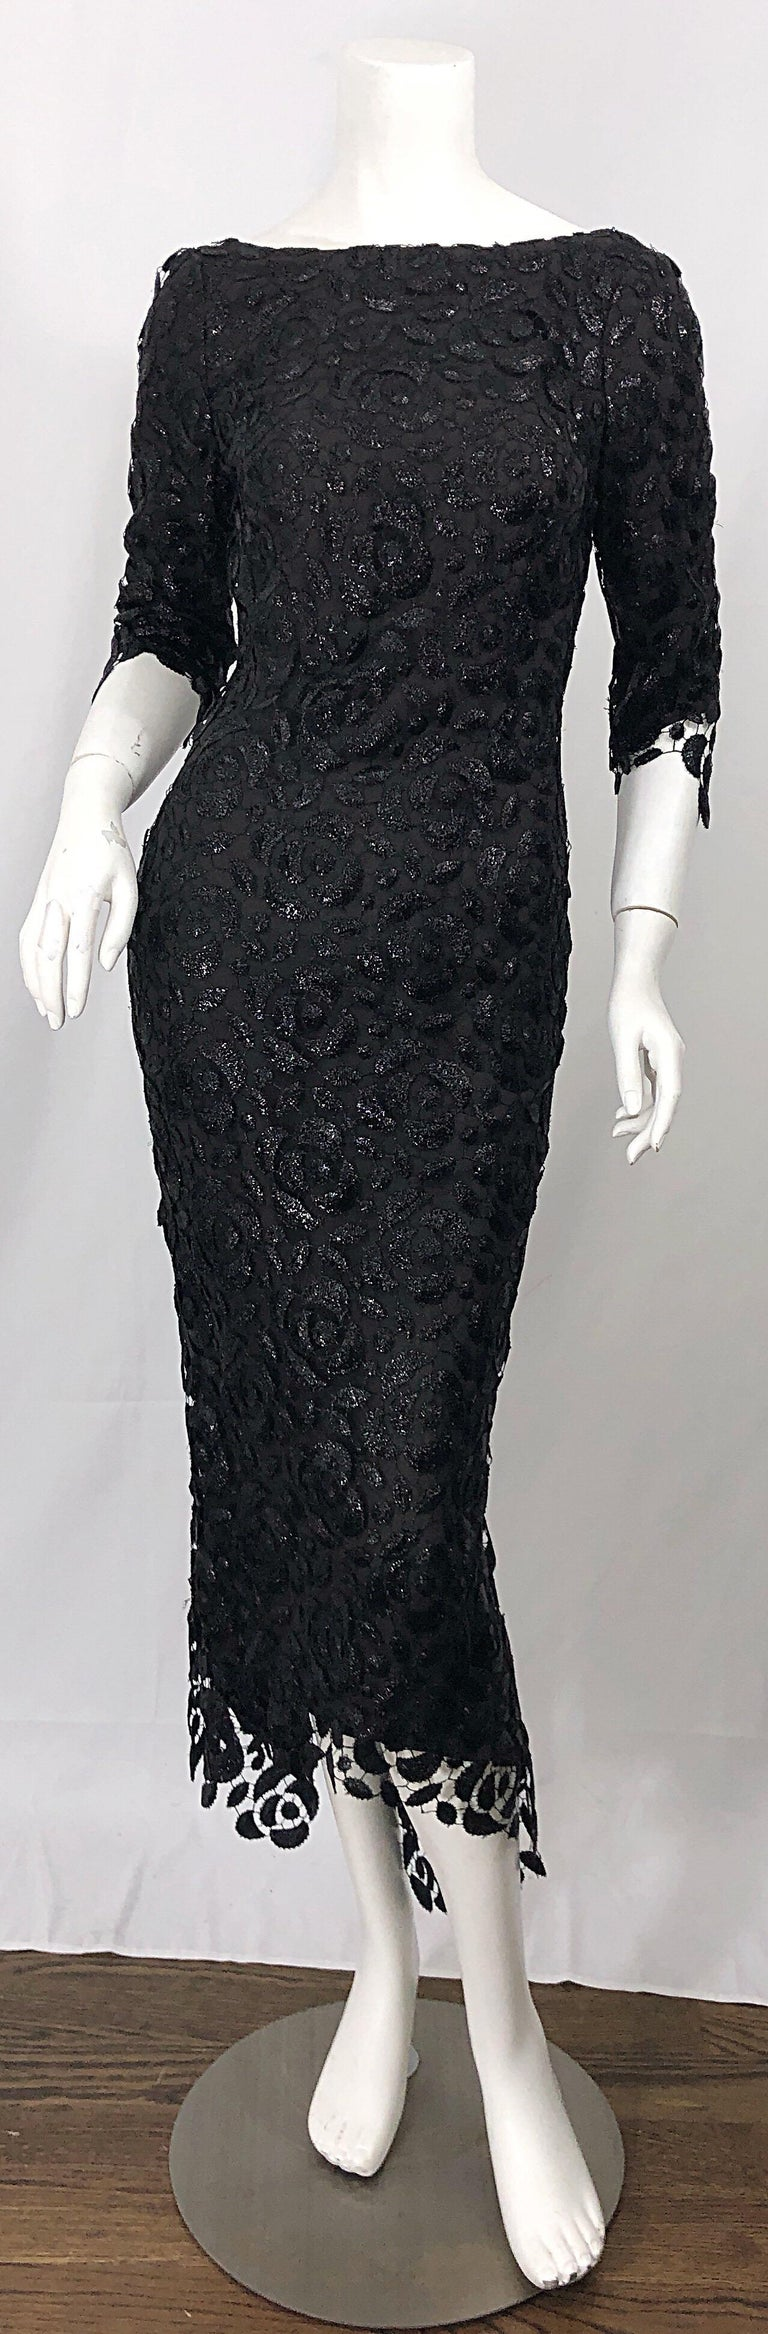 Stunning $10k Vintage Halston Black 3/4 Sleeves Silk Lace Crochet Sz 4 6 Dress For Sale 11